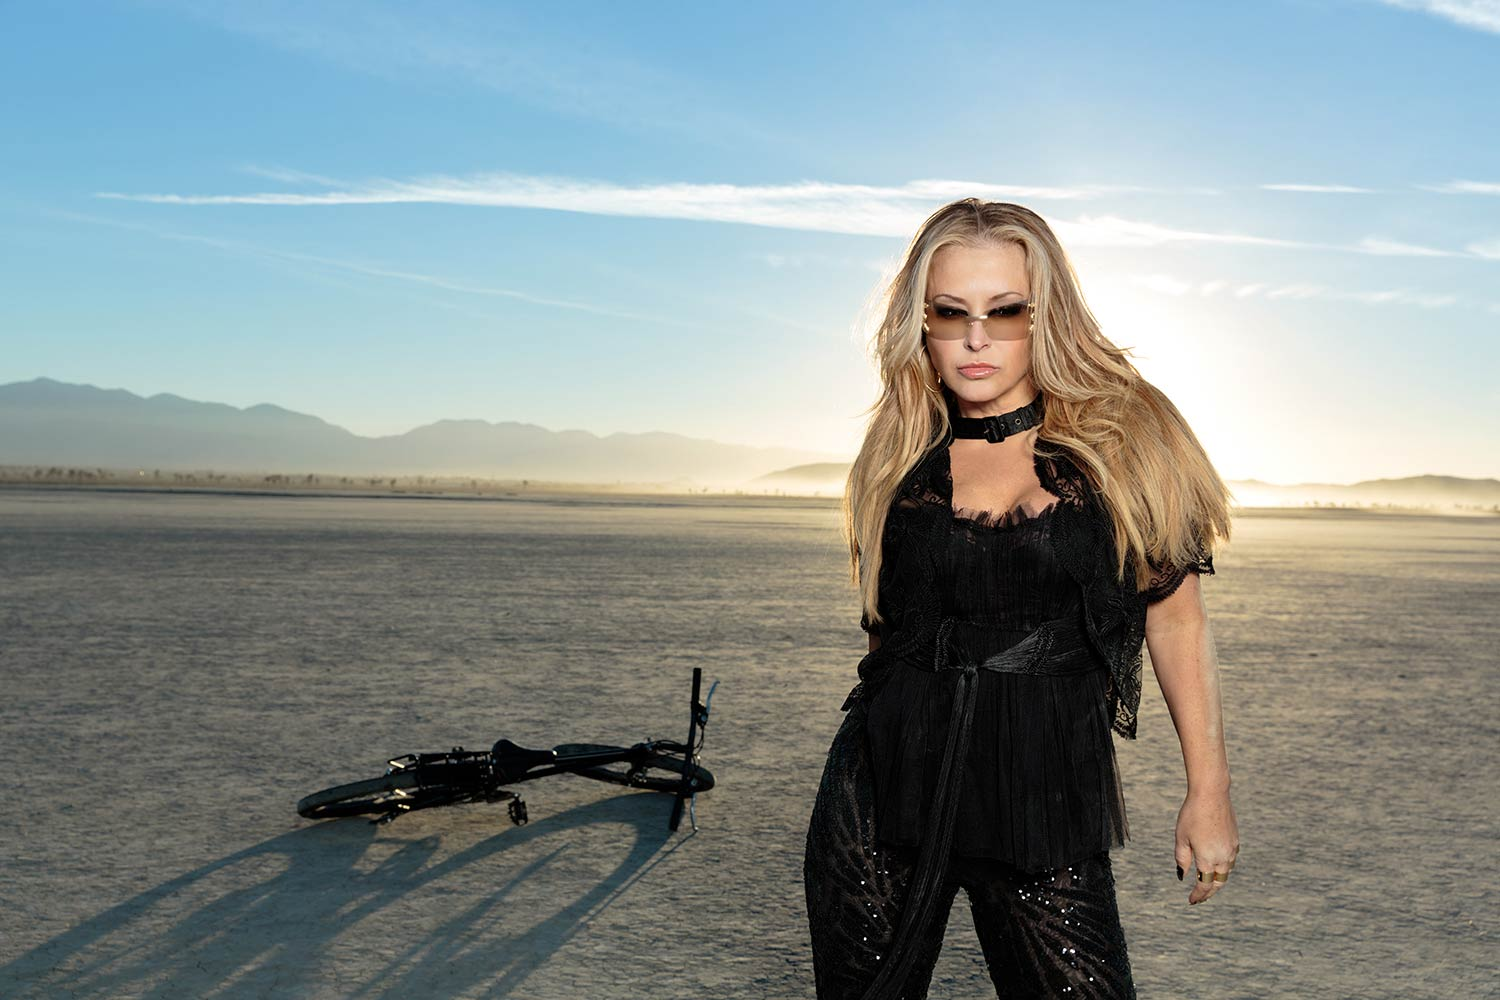 black singles in newkirk Born on 17th september 1968, anastacia lyn newkirk is an american singer, producer and former dancer she began her career as a dancer for hire in 1983.